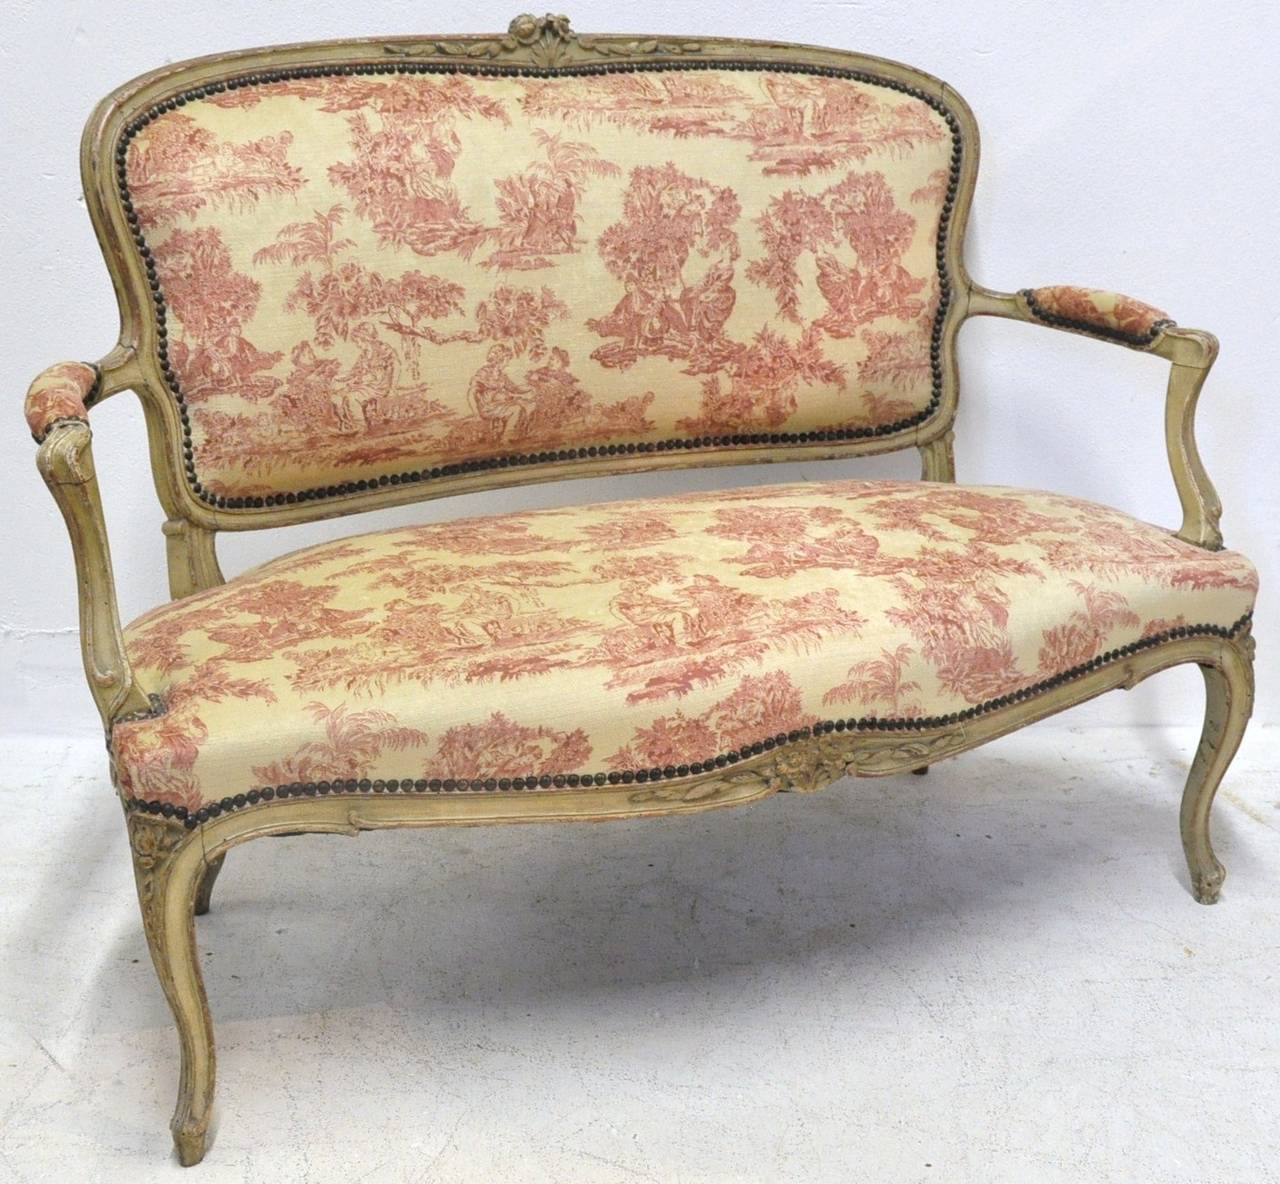 This elegant, small canape was carved in France, circa 1860. The antique banquette seating features delicate carvings around the frame, arm rests and cabriole legs. The love seat has been re-upholstered with a 19th century French red and beige